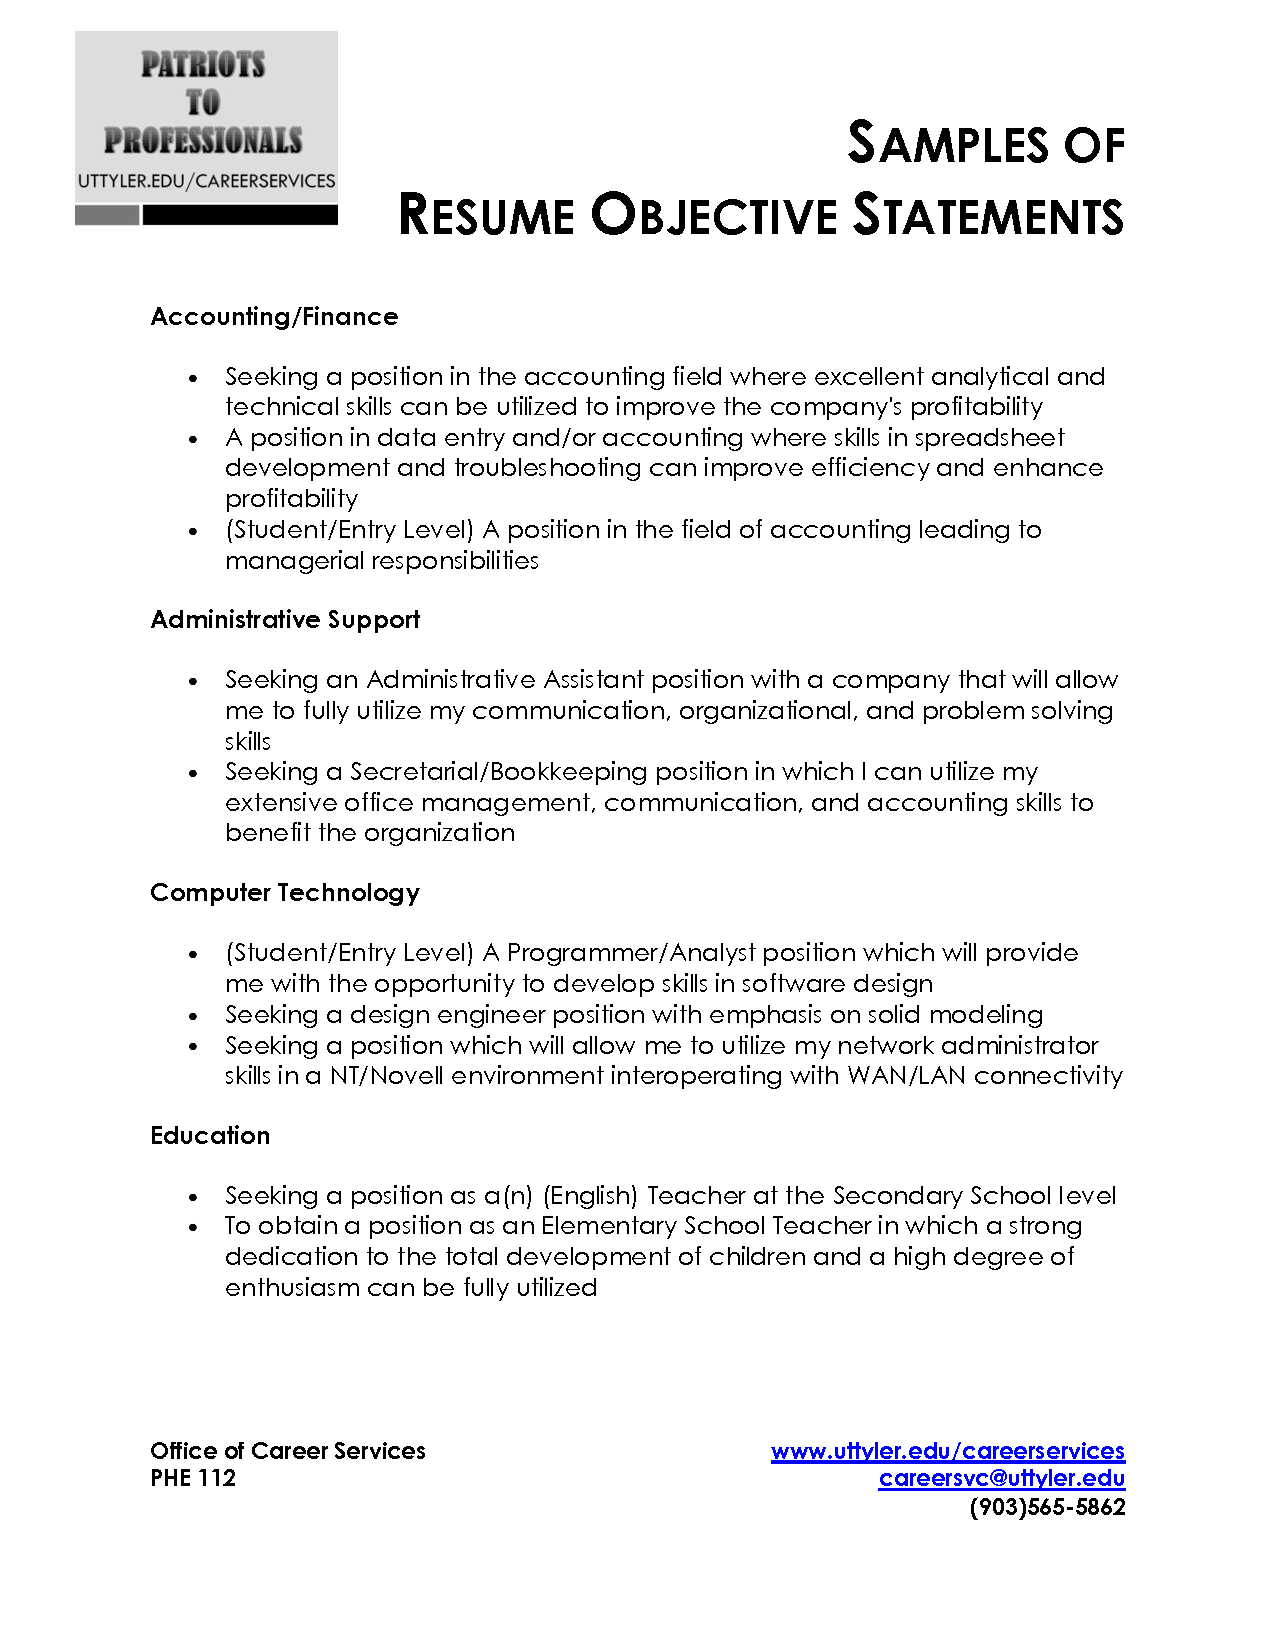 Administrative Objective For Resume Mardiyono Semair85 On Pinterest